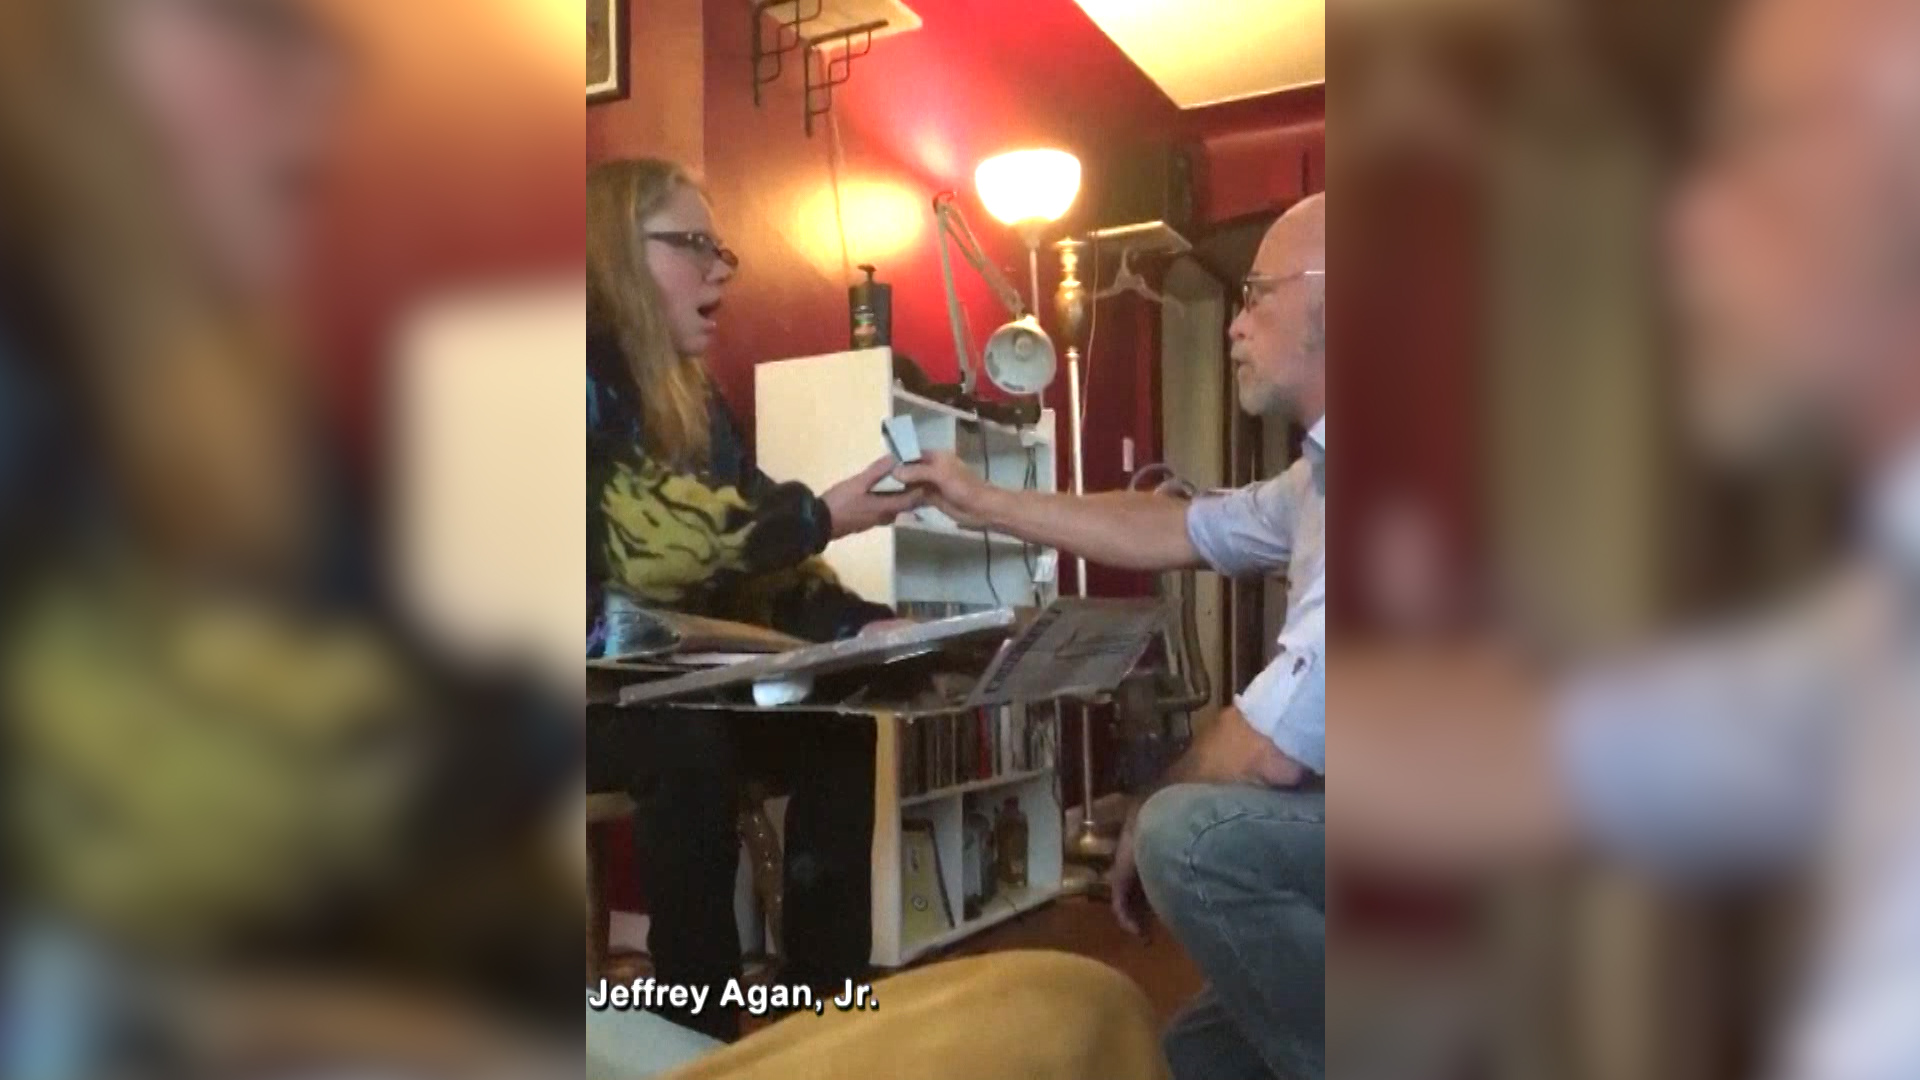 Divorced Couple Got Re-Engaged on Christmas & the Proposal Video Is Everything